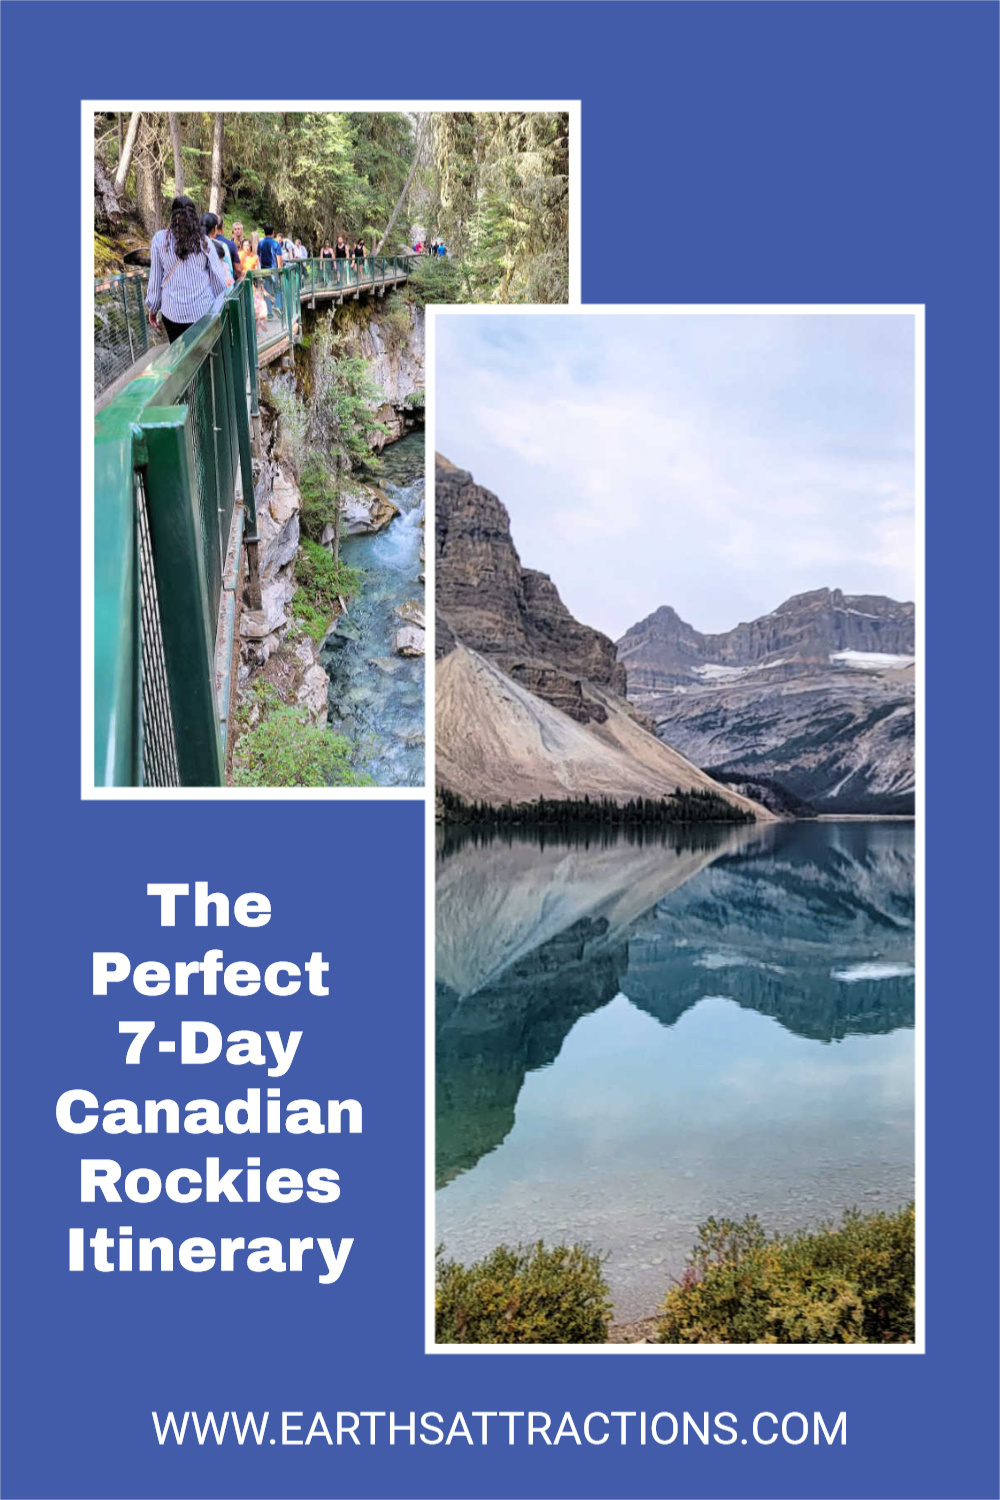 Planning a trip to the Canadian Rockies? Discover what to see and do in the Canadian Rockies in 7 days. Use this local's itinerary for 7 days in the Canadian Rockies. #canada #canadianrockies #rockies #outdoor #jasper #banff #northamerica #northamericatravel #canadatravel #traveldestinations